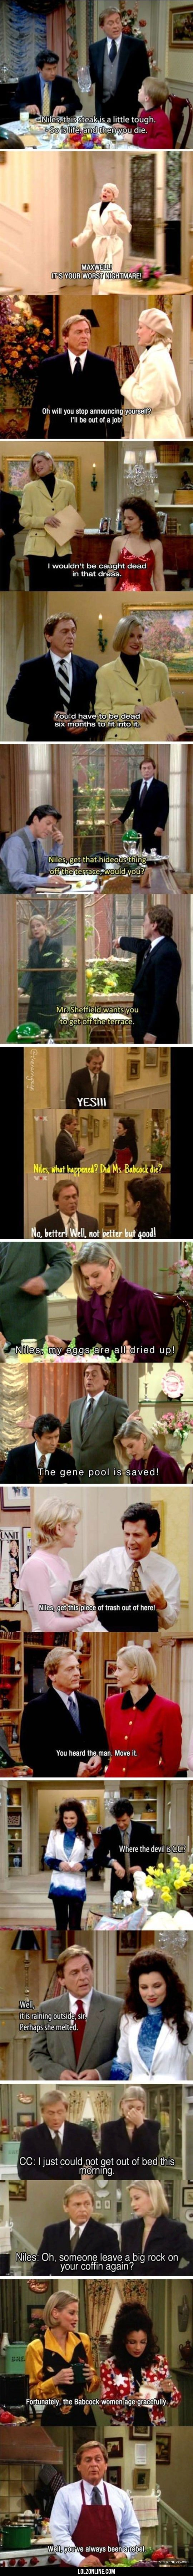 Niles, The Original Burn Master#funny #lol #lolzonline << WHO IS THIS MAN??>>>HE'S FROM THE BEST SHOW EVER CALLED THE NANNY AND I LOVE HIM